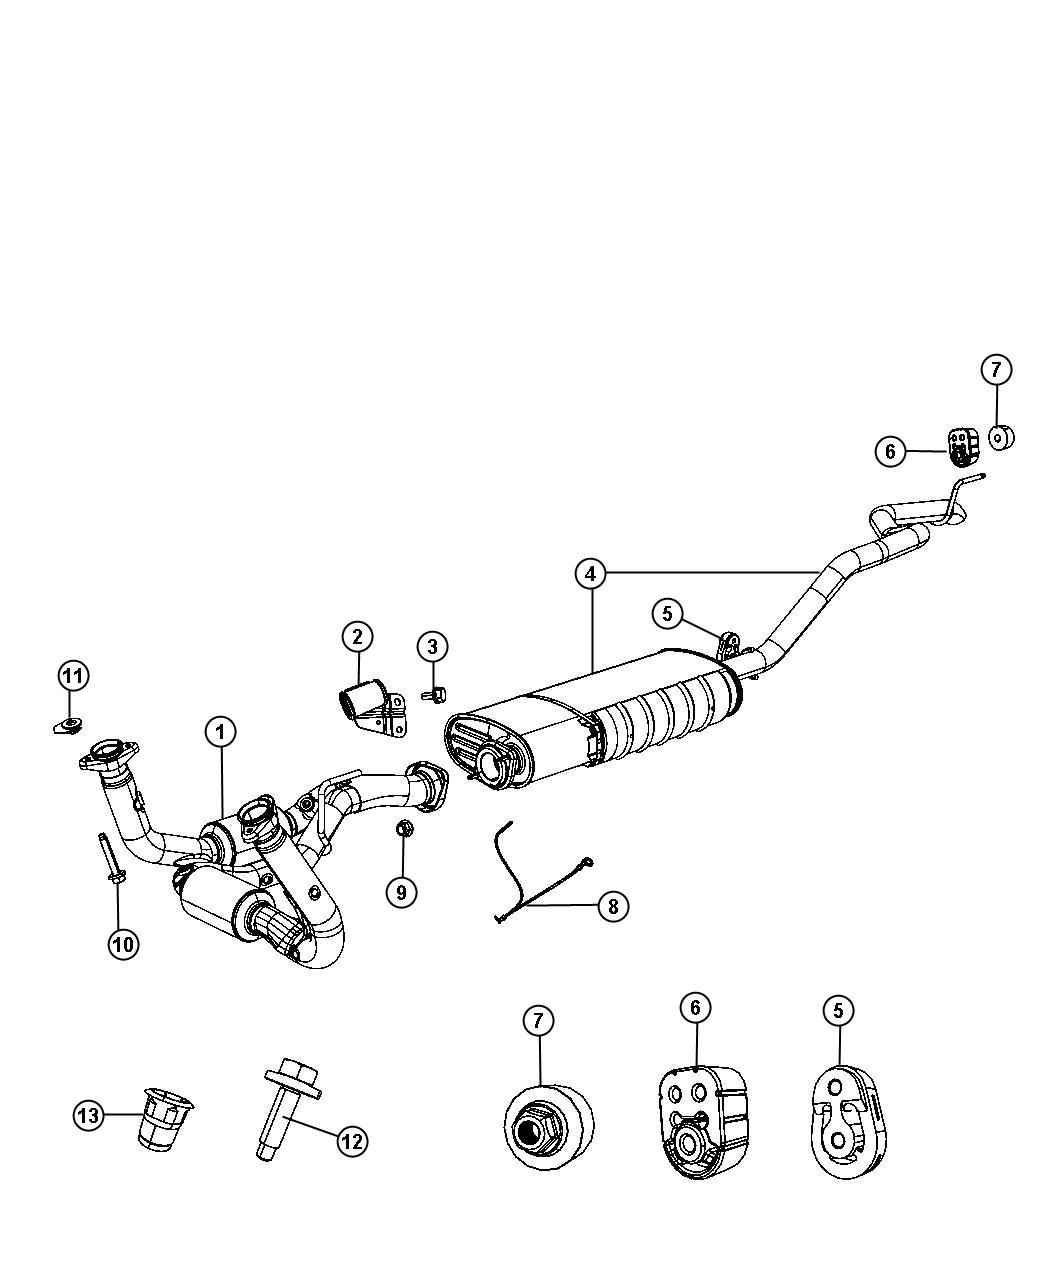 Jeep Grand Cherokee Used For Pipe And Converter Exhaust